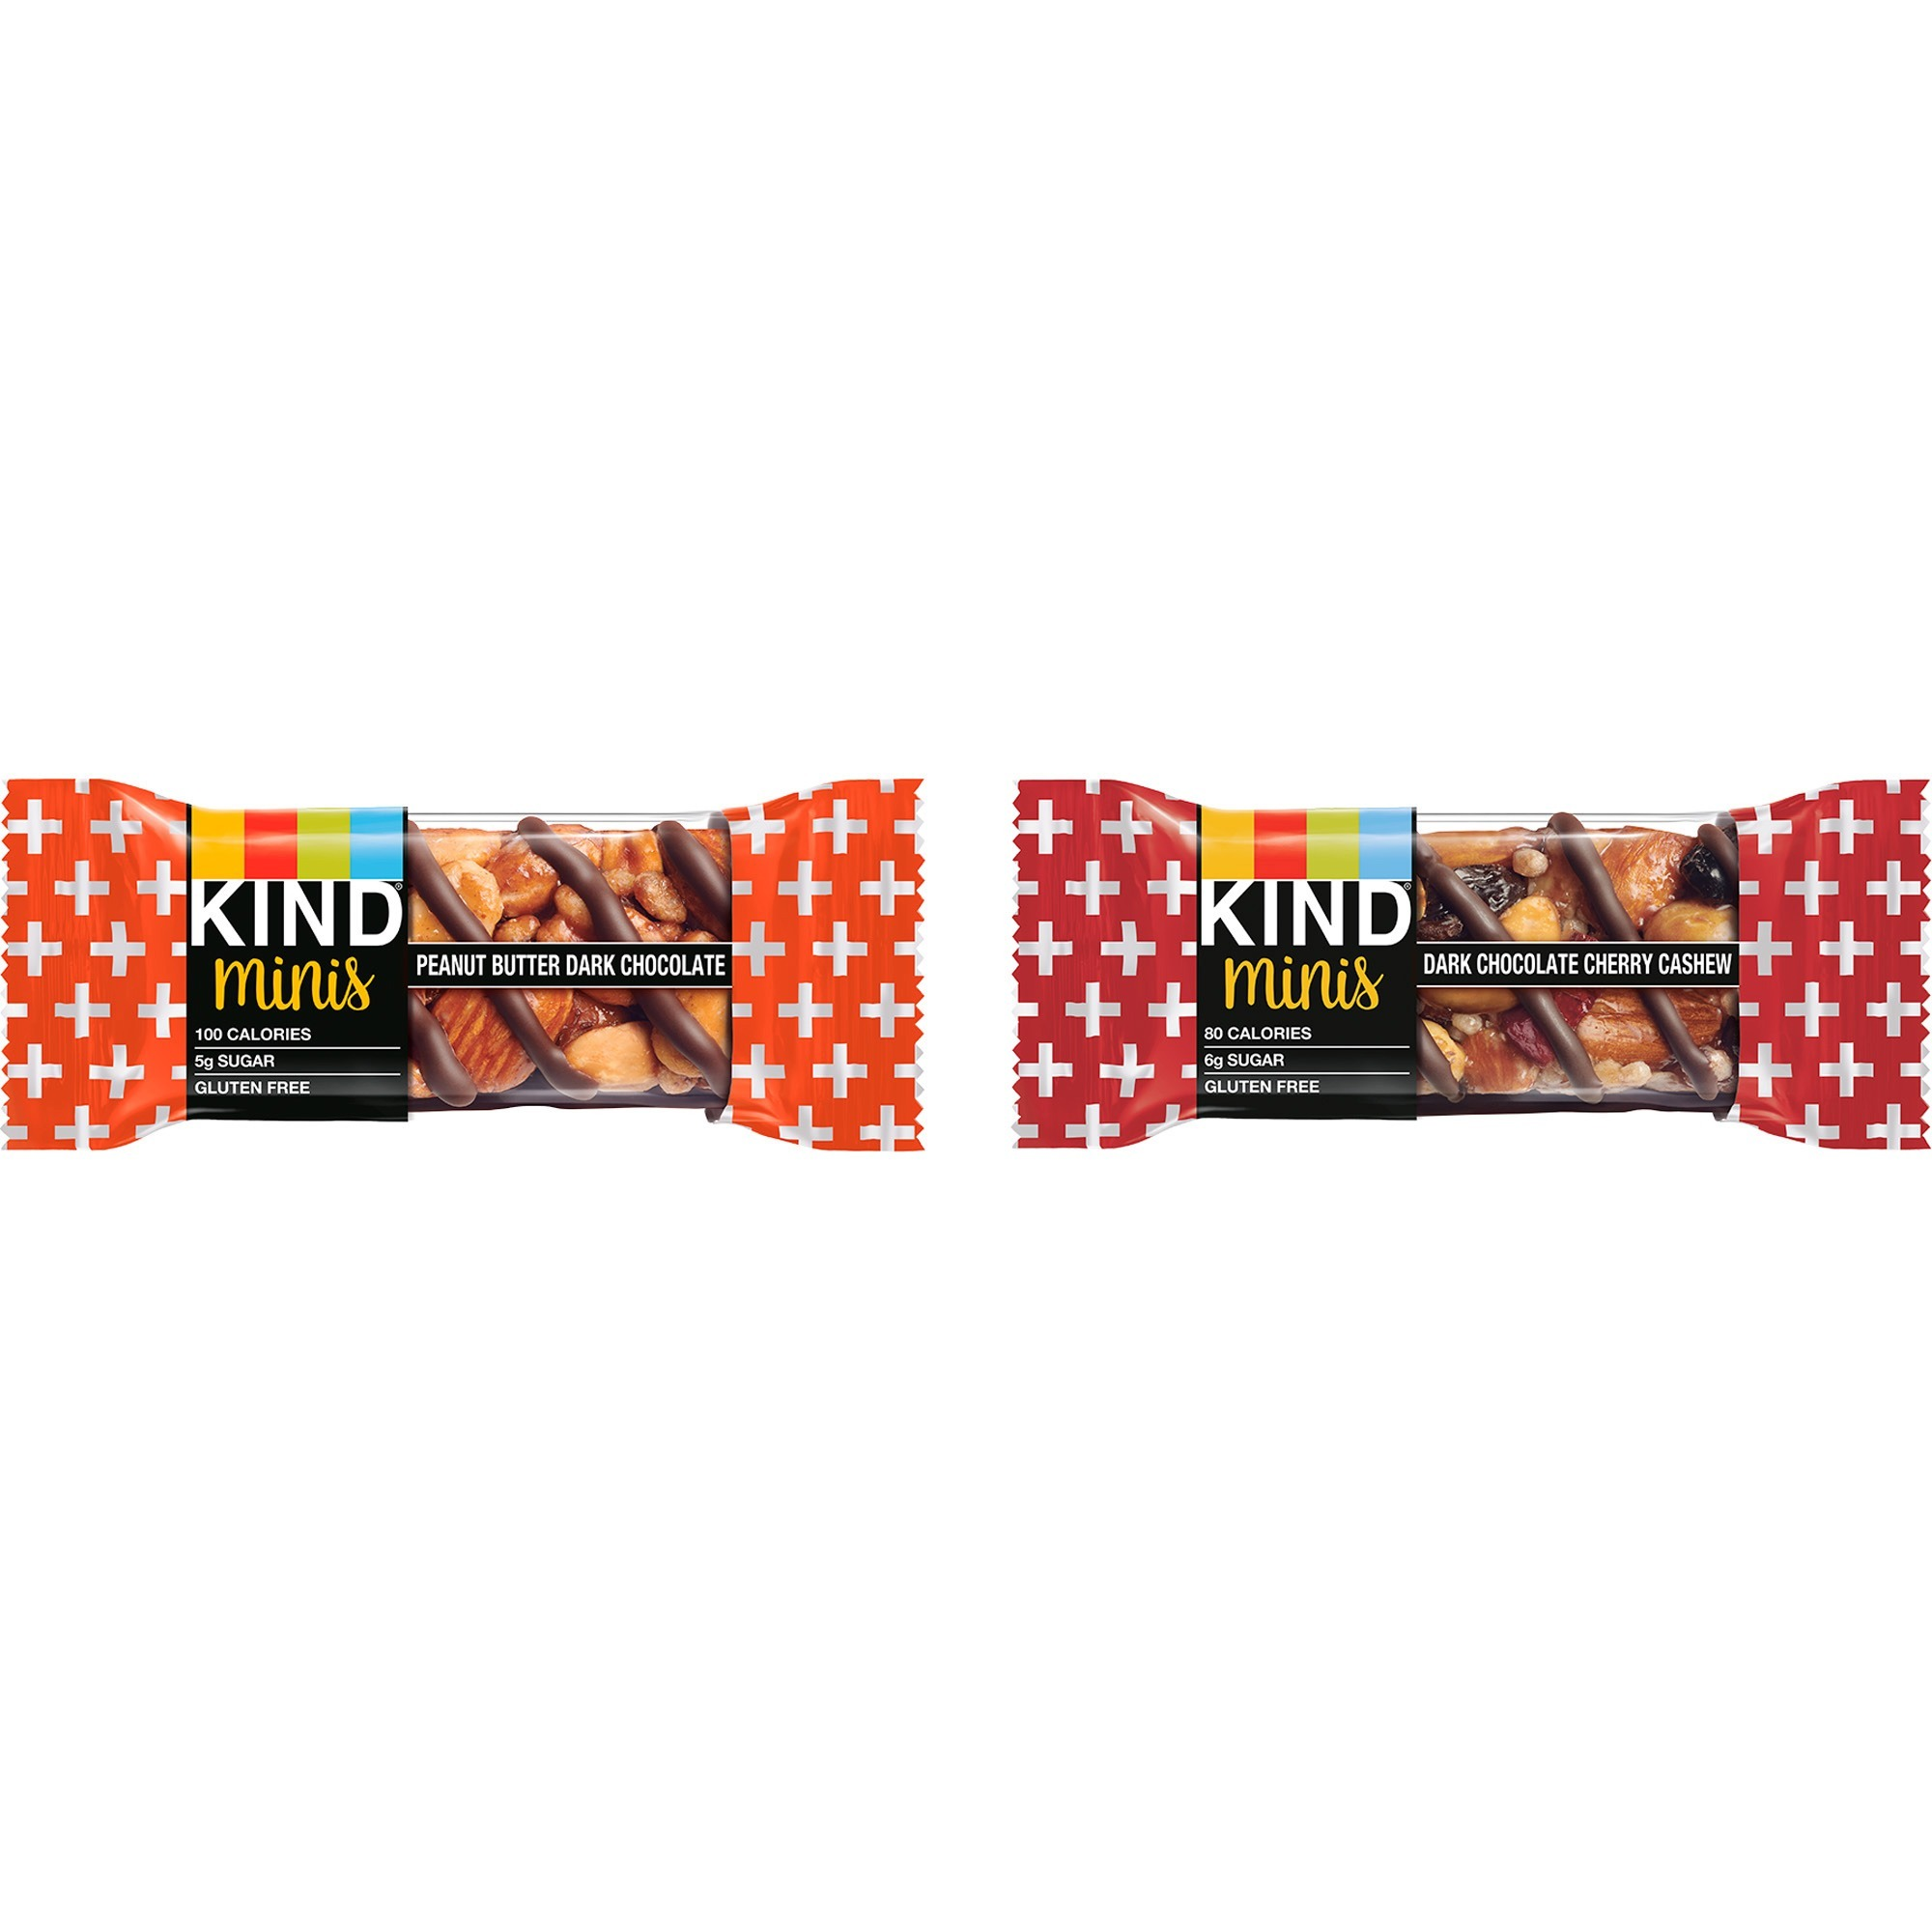 KIND Minis Snack Bar Variety Pack - Gluten-free, Low Sodium, Trans Fat Free, Individually Wrapped, No Artificial Sweeteners - Dark Chocolate Cherry Cashew, Peanut Butter Dark Chocolate - 0.71 oz - 10 / Box